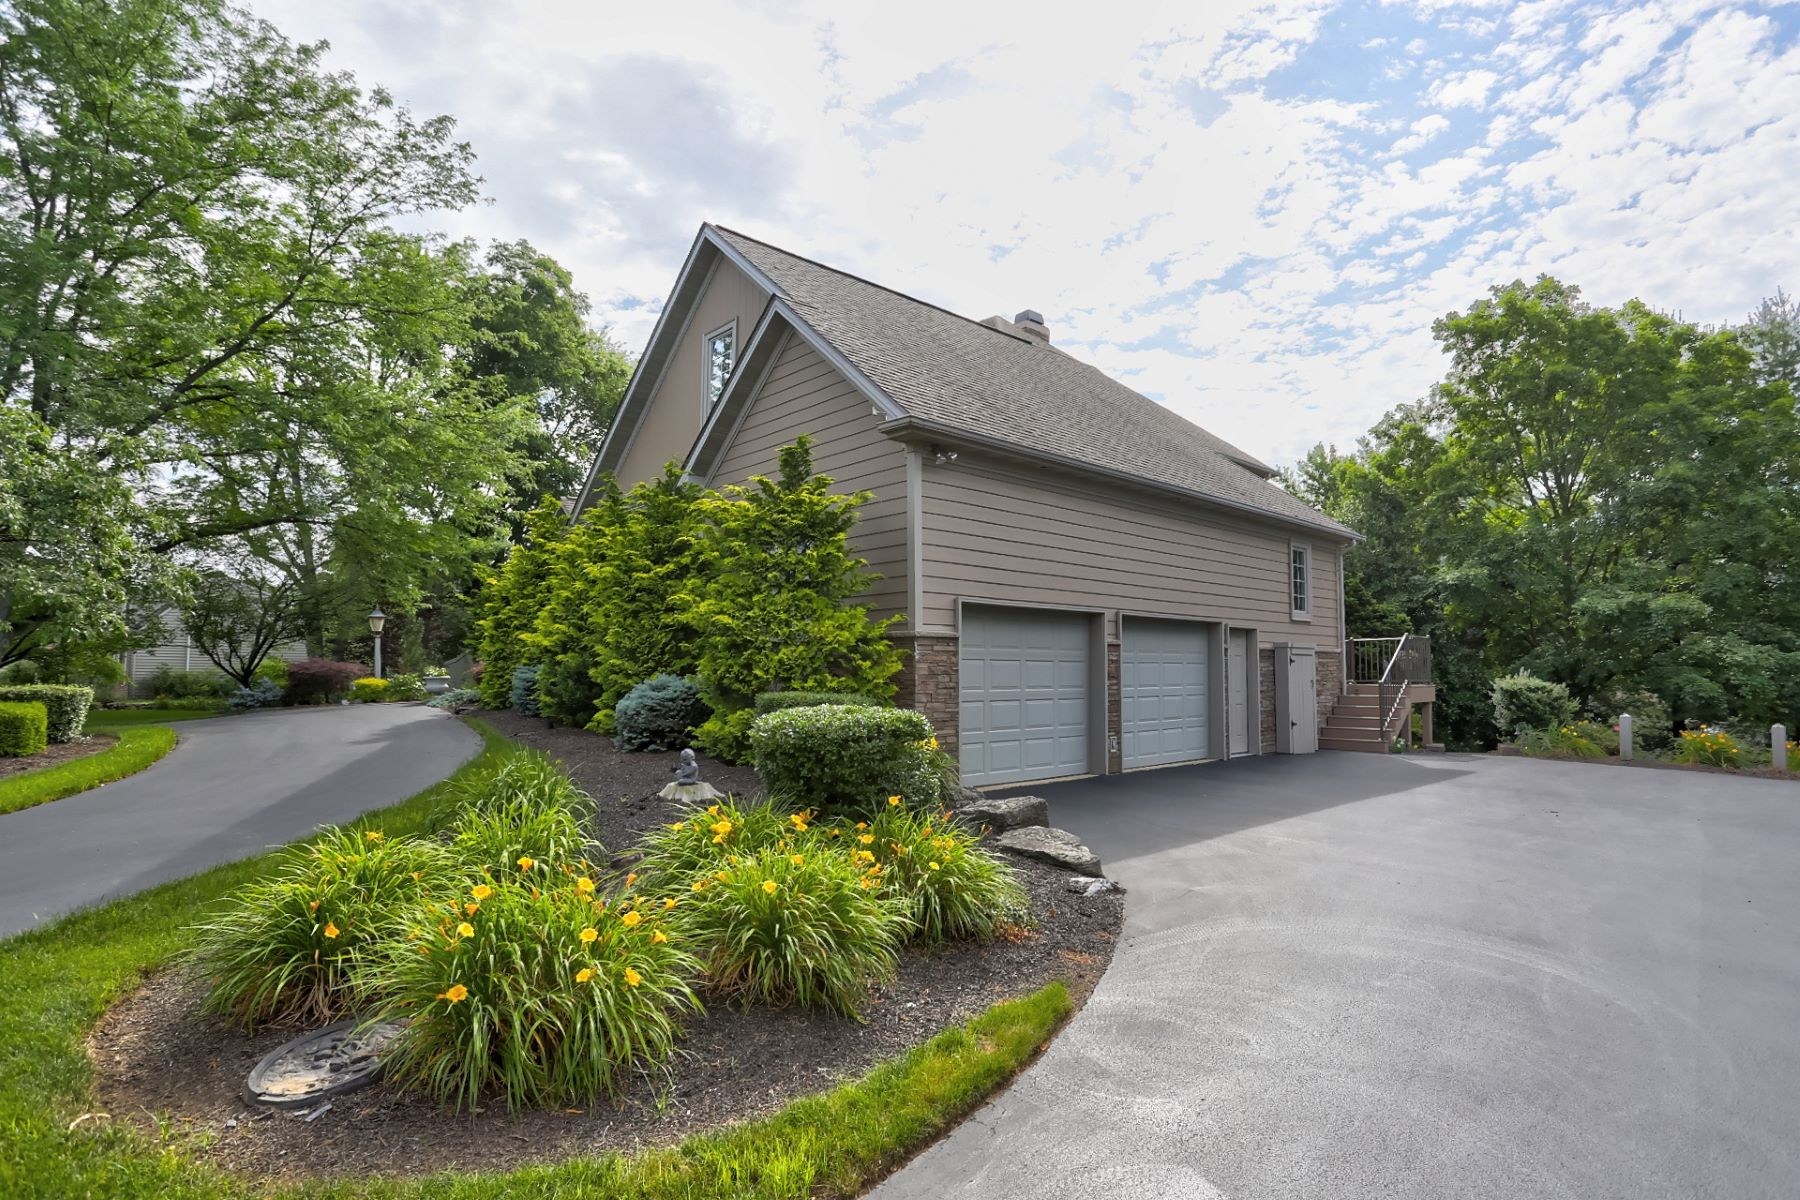 Additional photo for property listing at 354 N Farm Drive 354 N Farm Drive Lititz, 賓夕法尼亞州 17543 美國